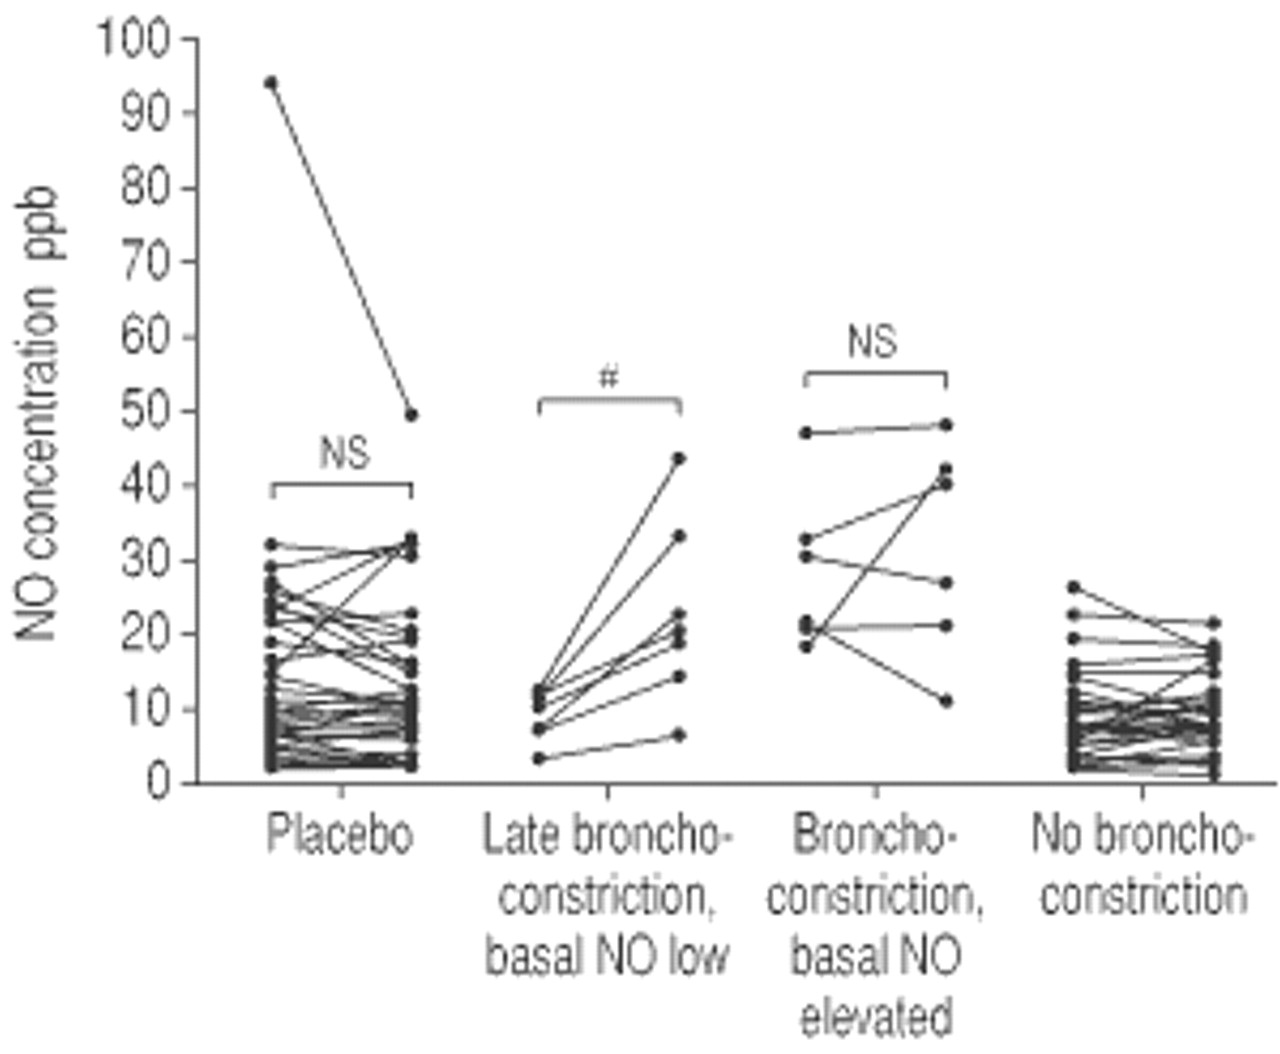 Exhaled Nitric Oxide In Specific Challenge Tests To Assess Exhaling Diagram Person Related Keywords Suggestions Download Figure